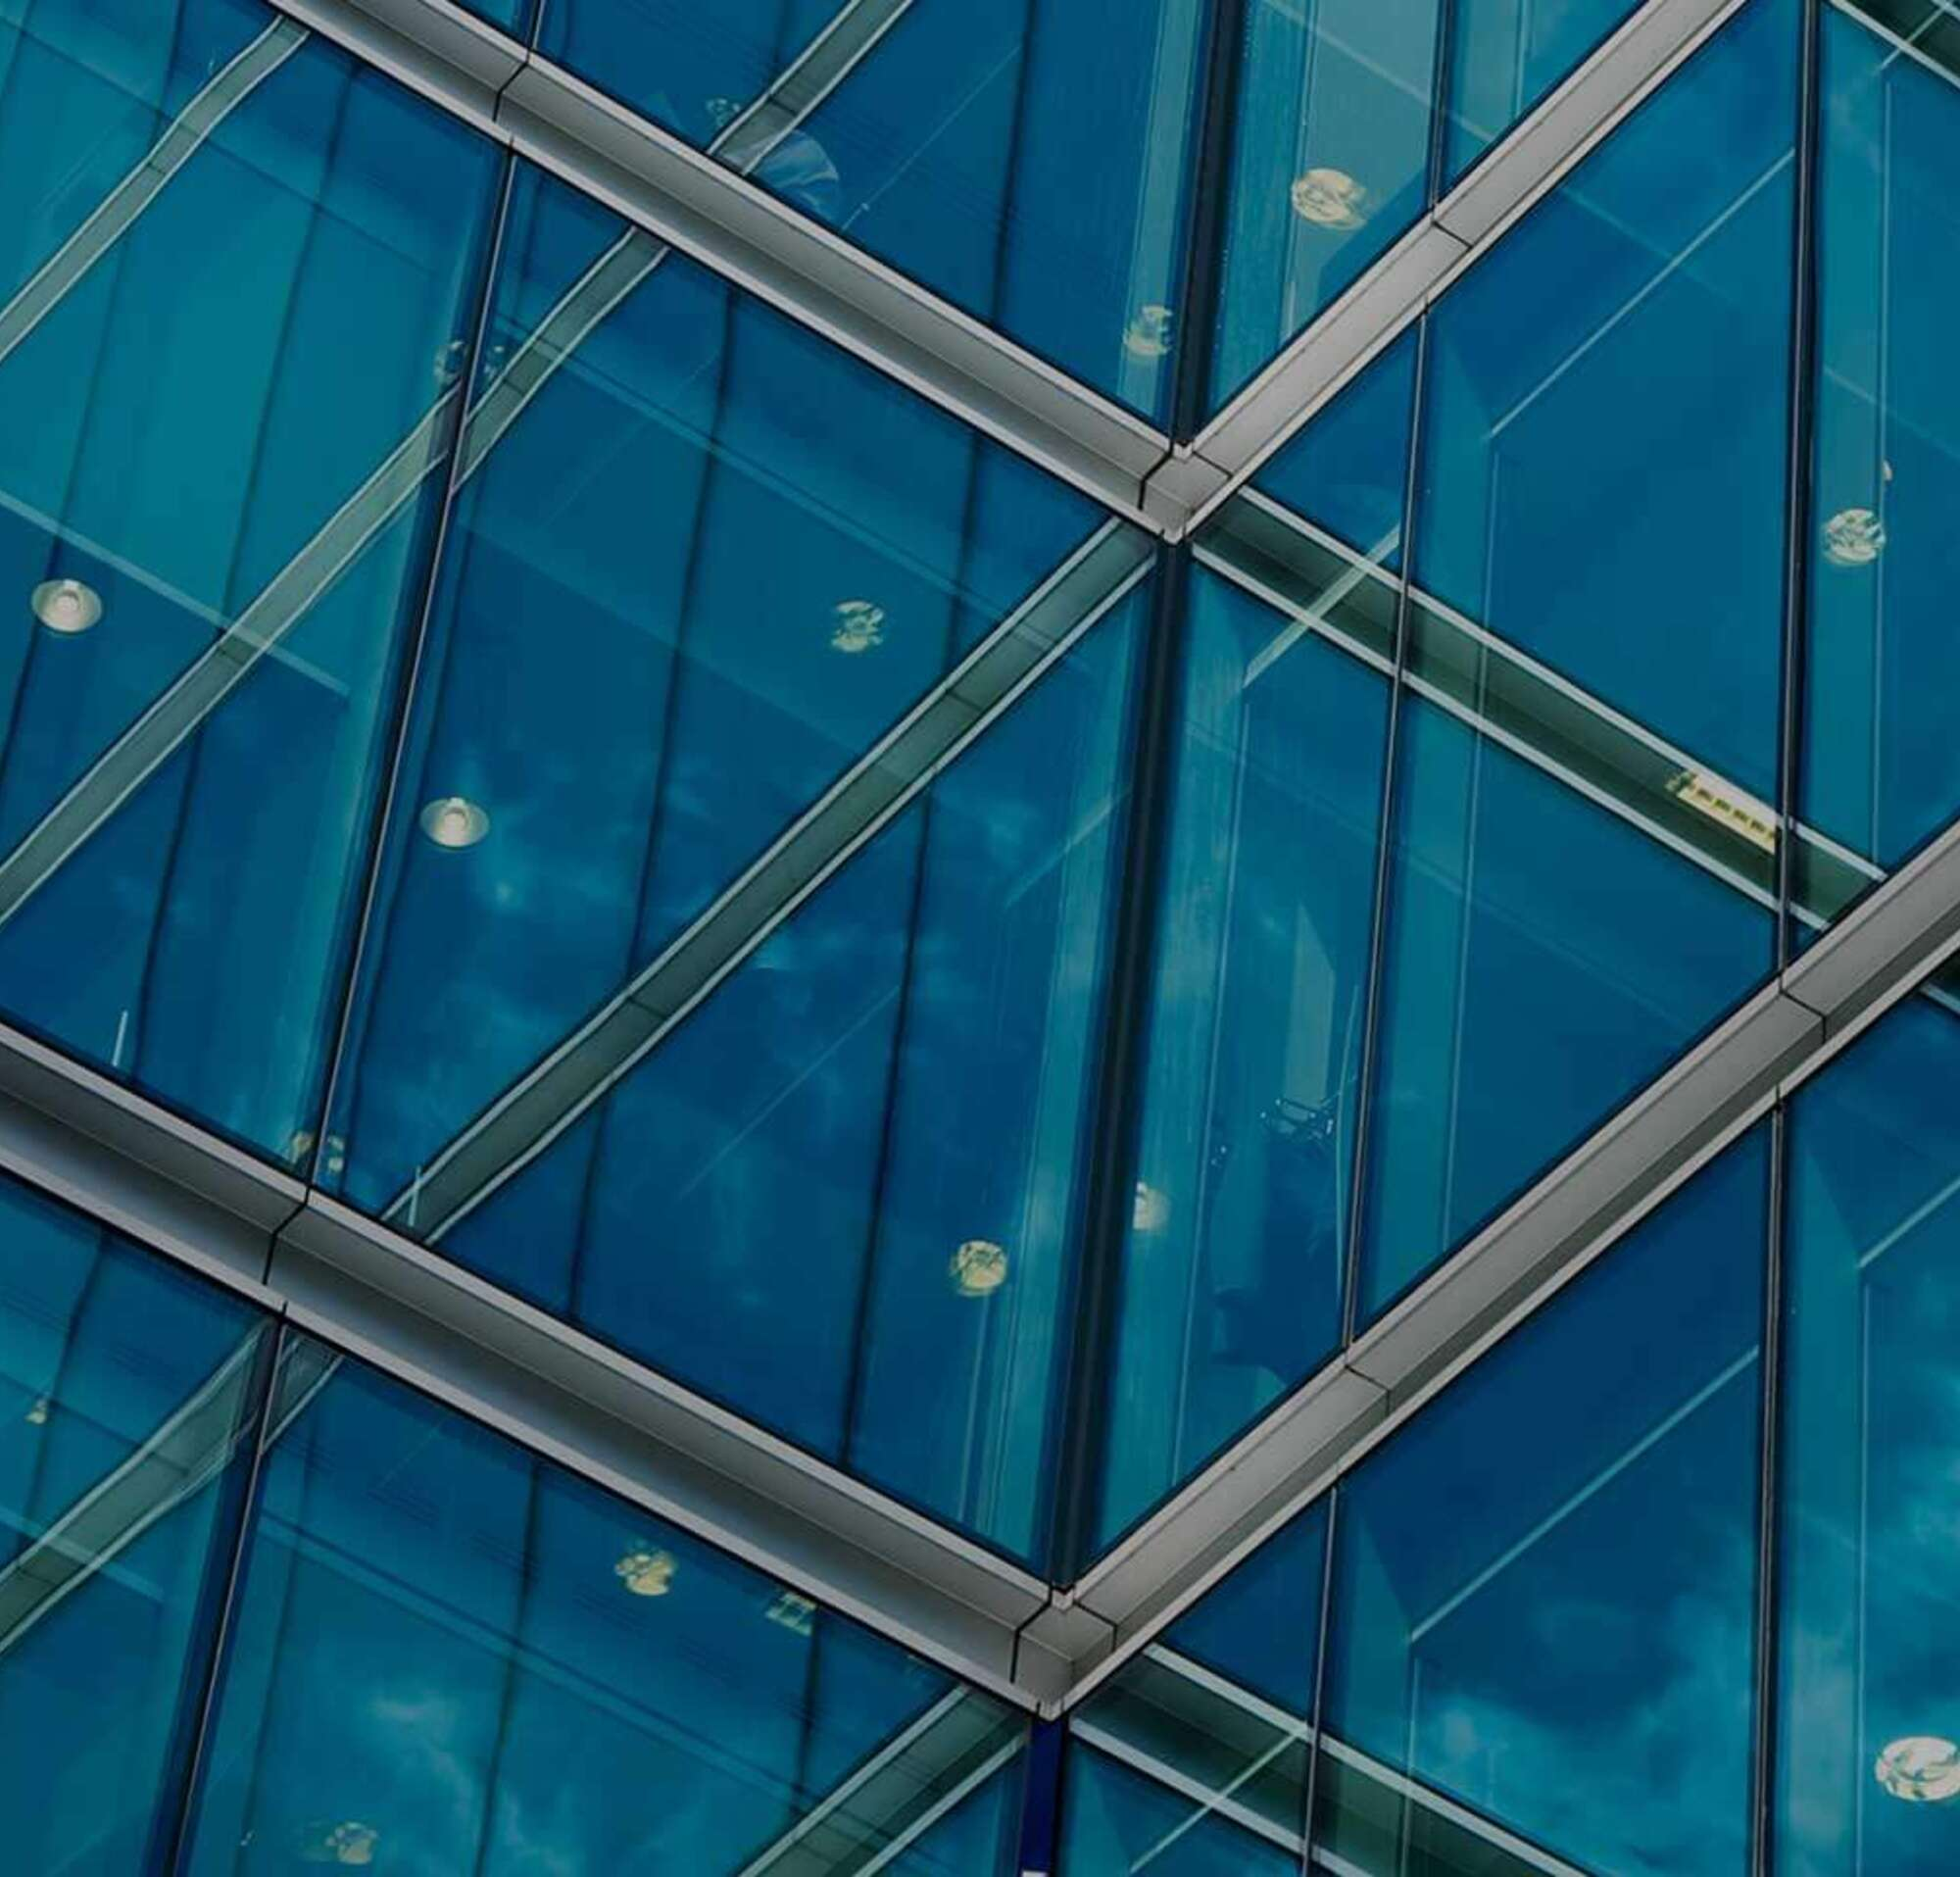 The corner of a glass high rise.